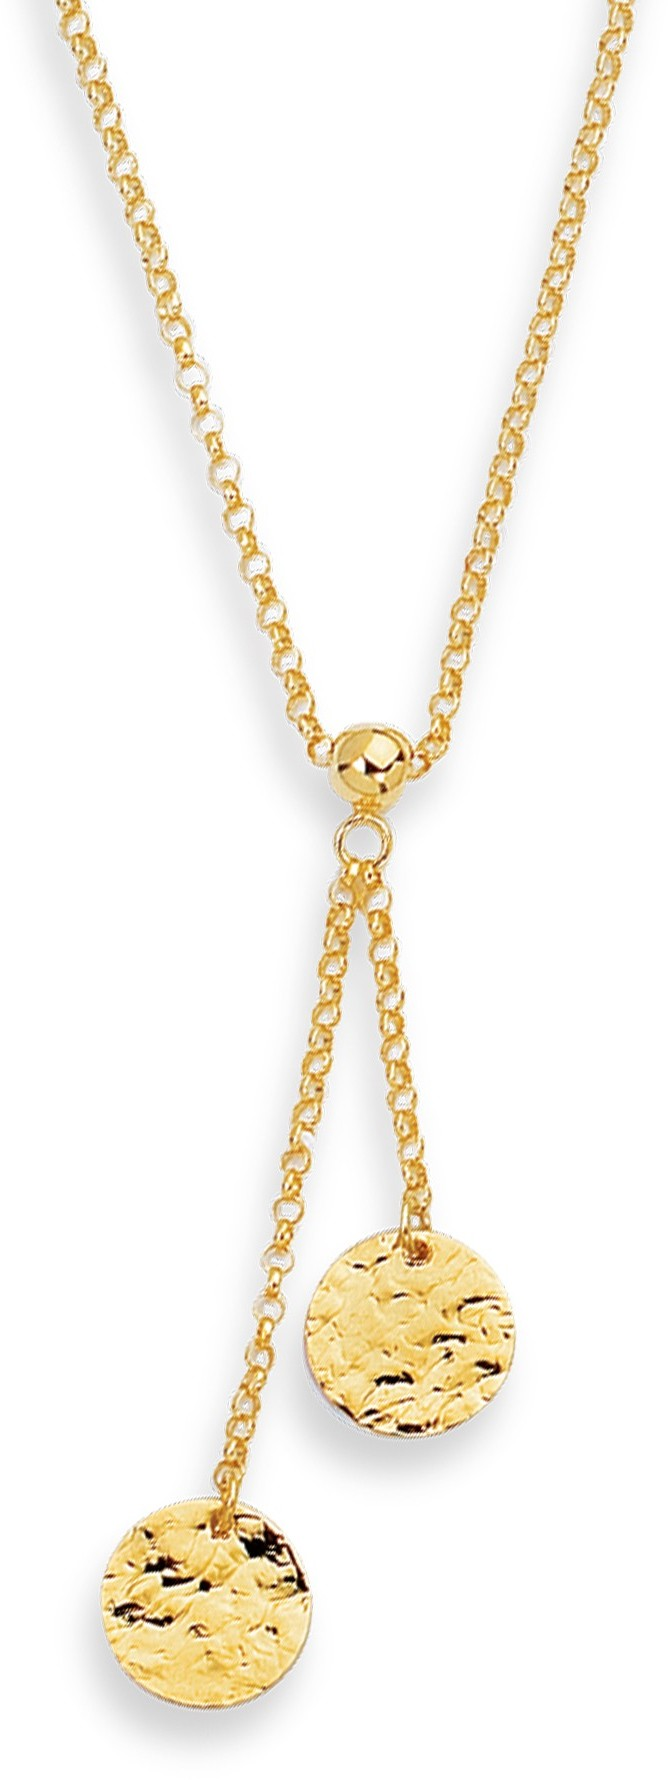 "17"" 14K Yellow Gold 1.5mm (0.06"") Rolo Chain w/ 2 Round Flat Hammered Pendant Lariats Necklace w/ Lobster Clasp"